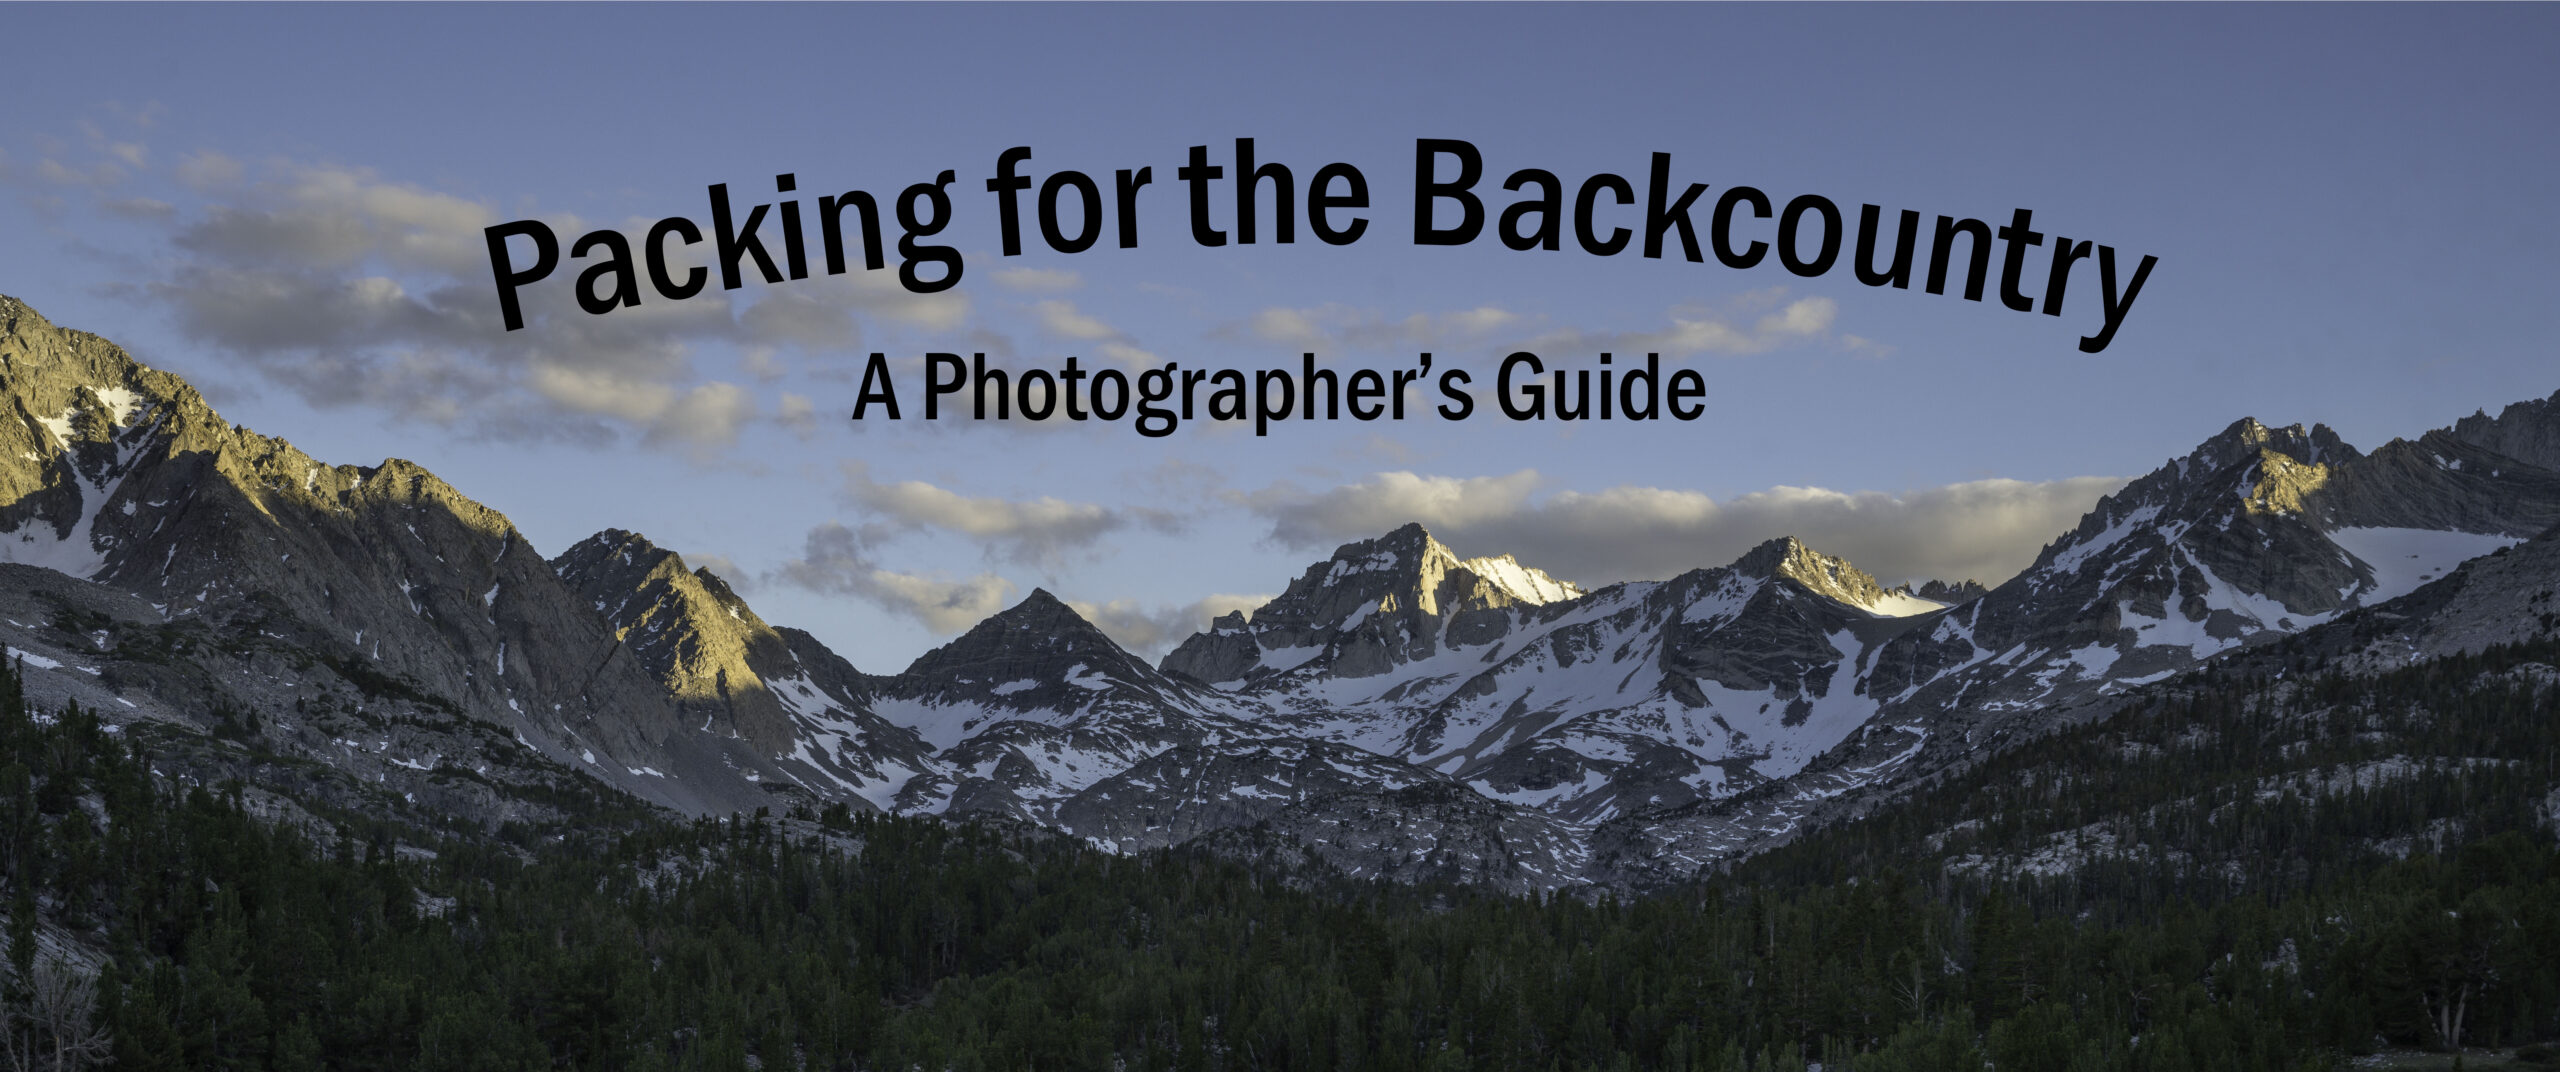 Packing for the Backcountry: A Photographer's Guide